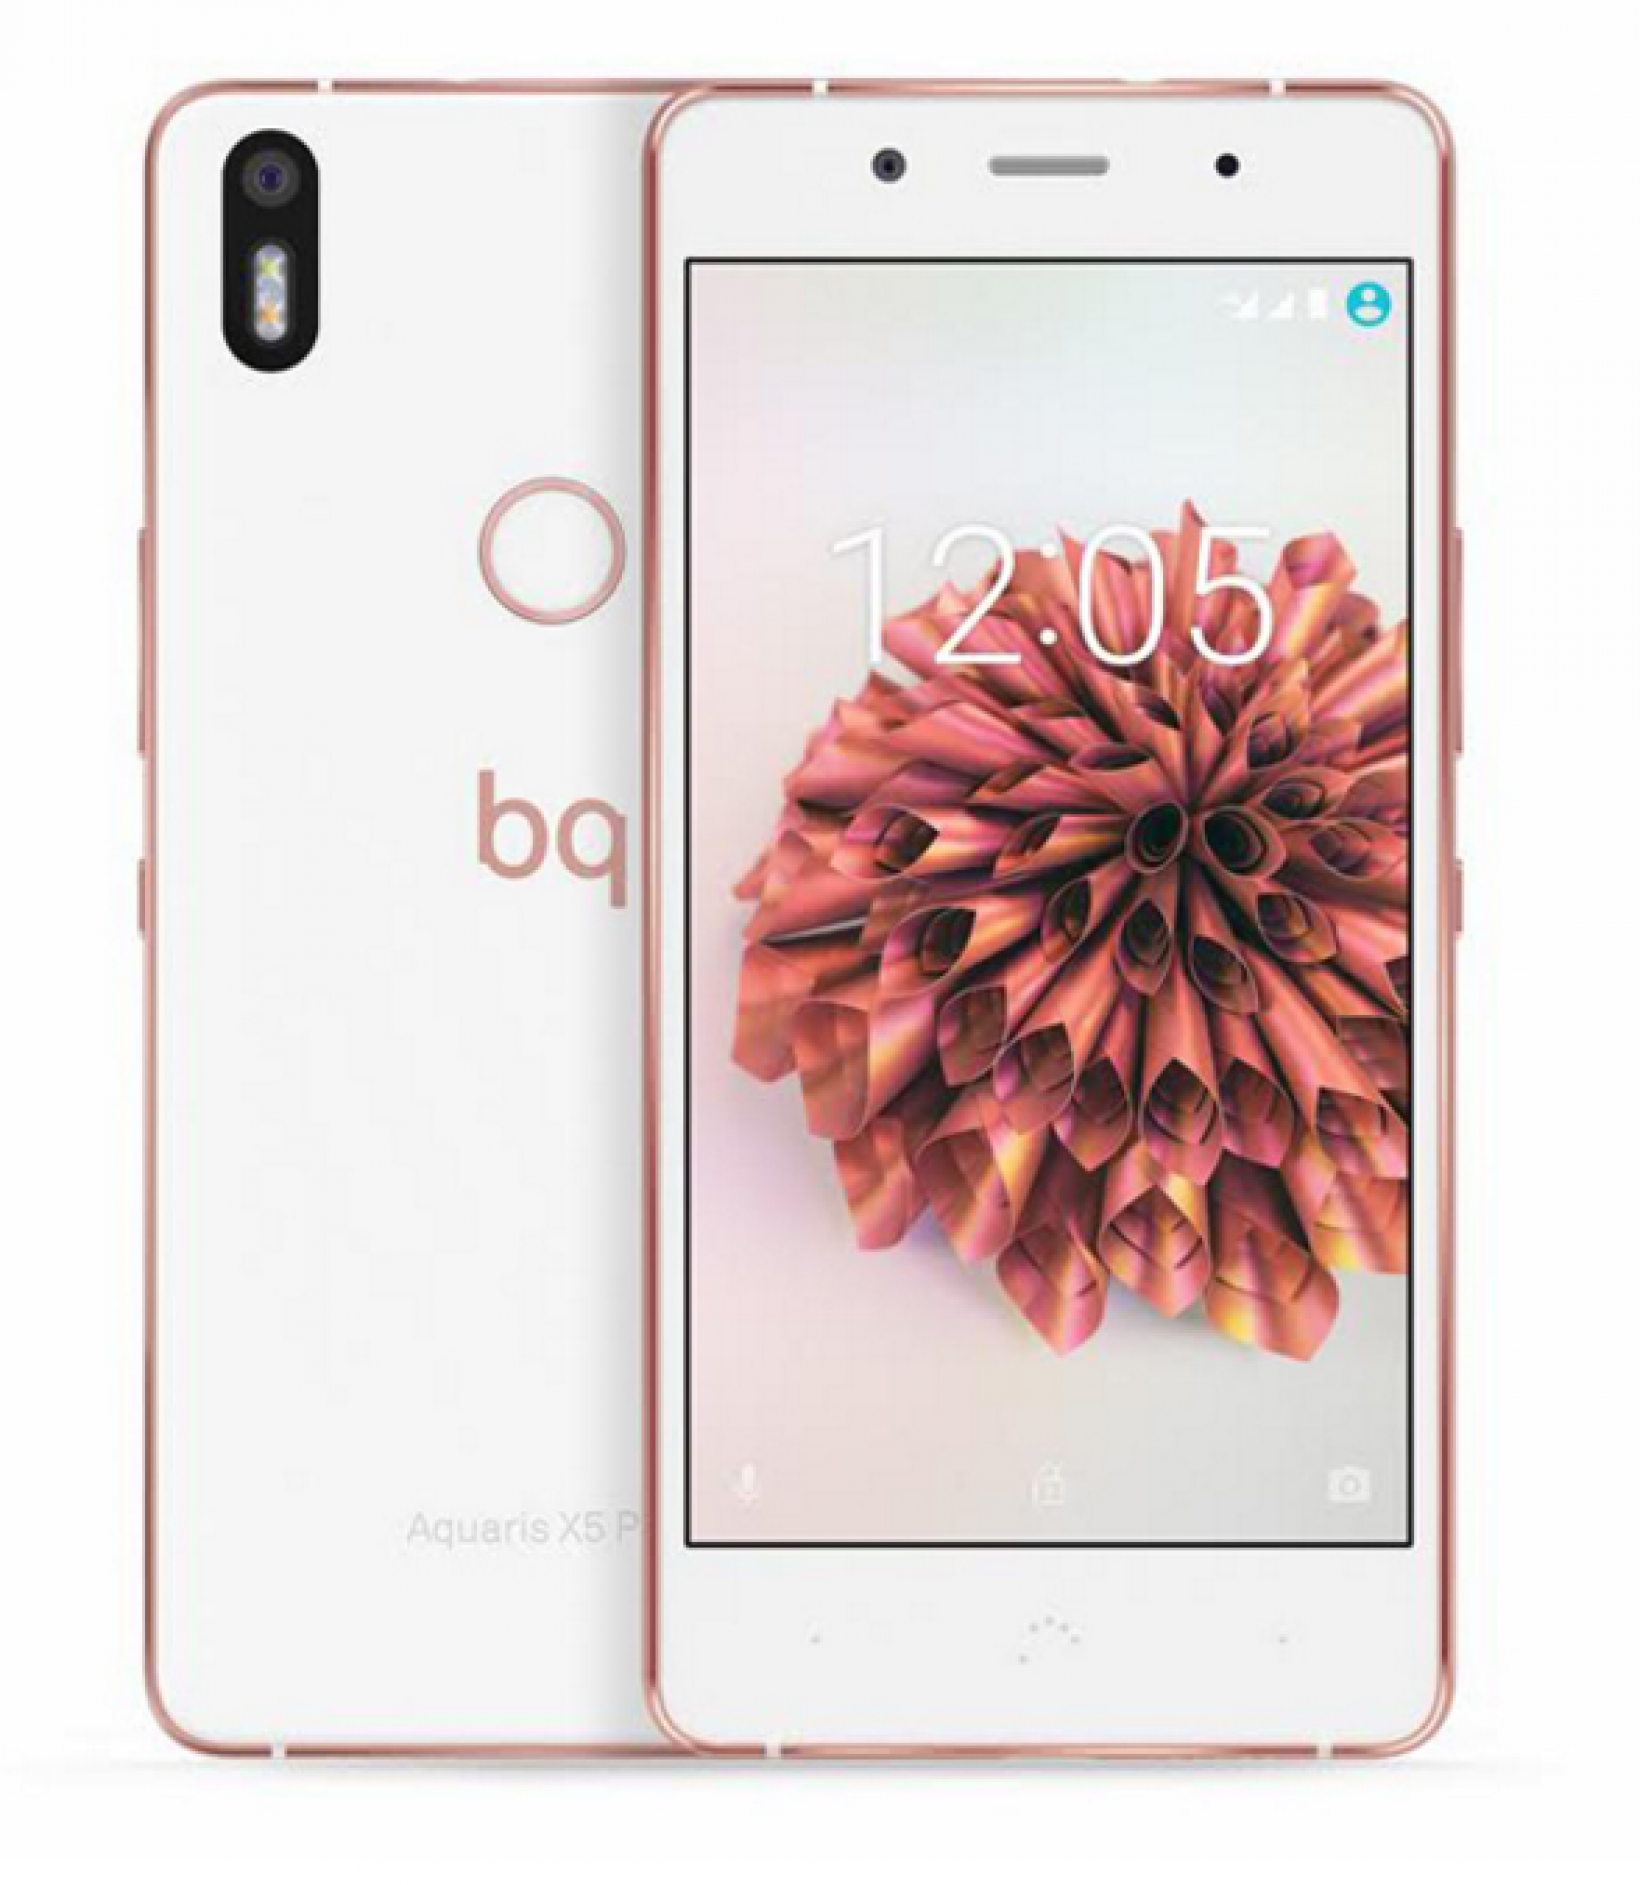 BQ Aquaris X5 Plus, the first European Galileo-ready smartphone to hit the market. ©BQ